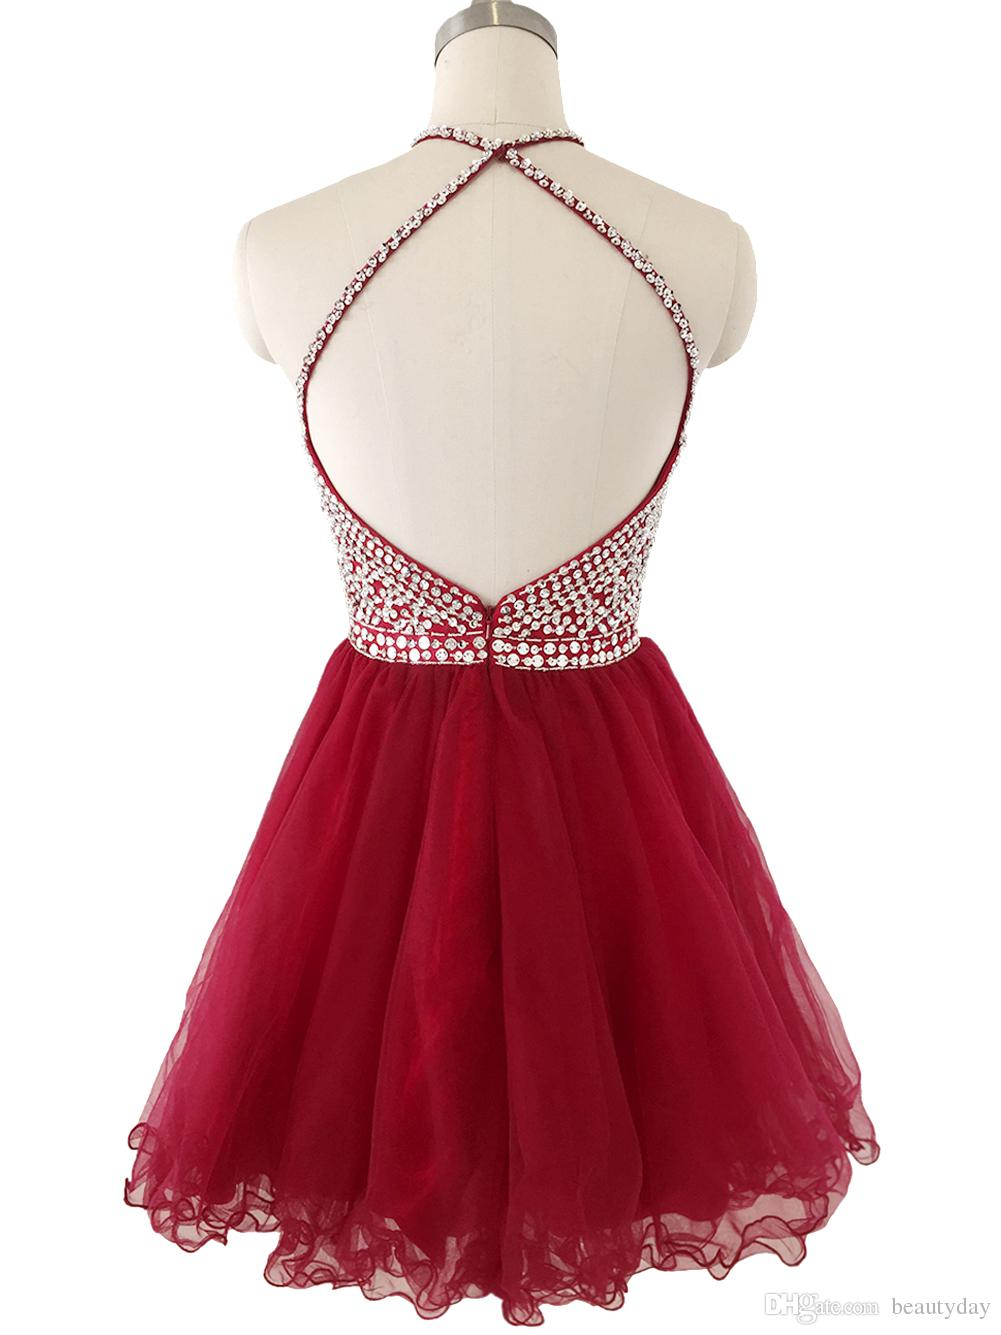 Short Prom Dresses 2019 Burgundy Tulle Homecoming Party Cockatil Red Blue Pageant Gowns Dress Real image Dubai Beads Backless Cheap